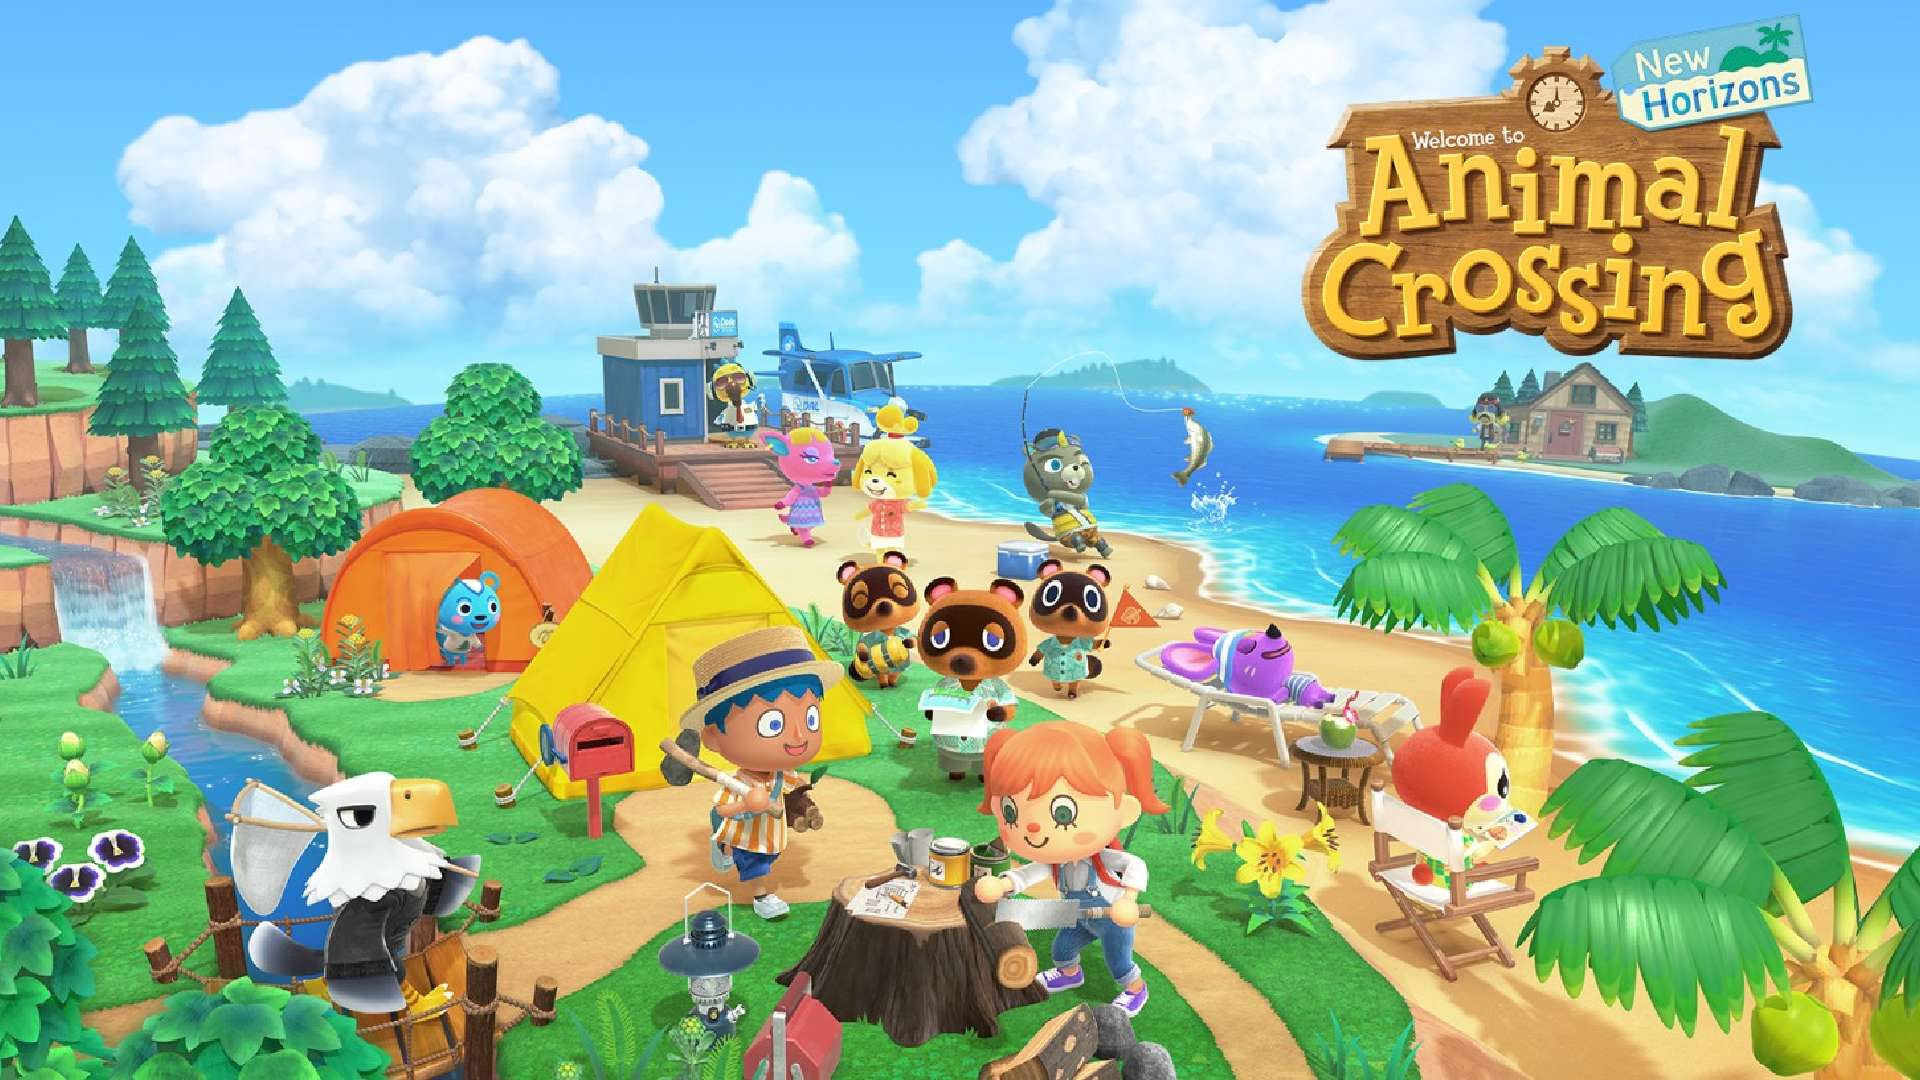 Animal-Crossing-Wallpaper Top 10 Games We Played in 2020 [Best Recommendations]